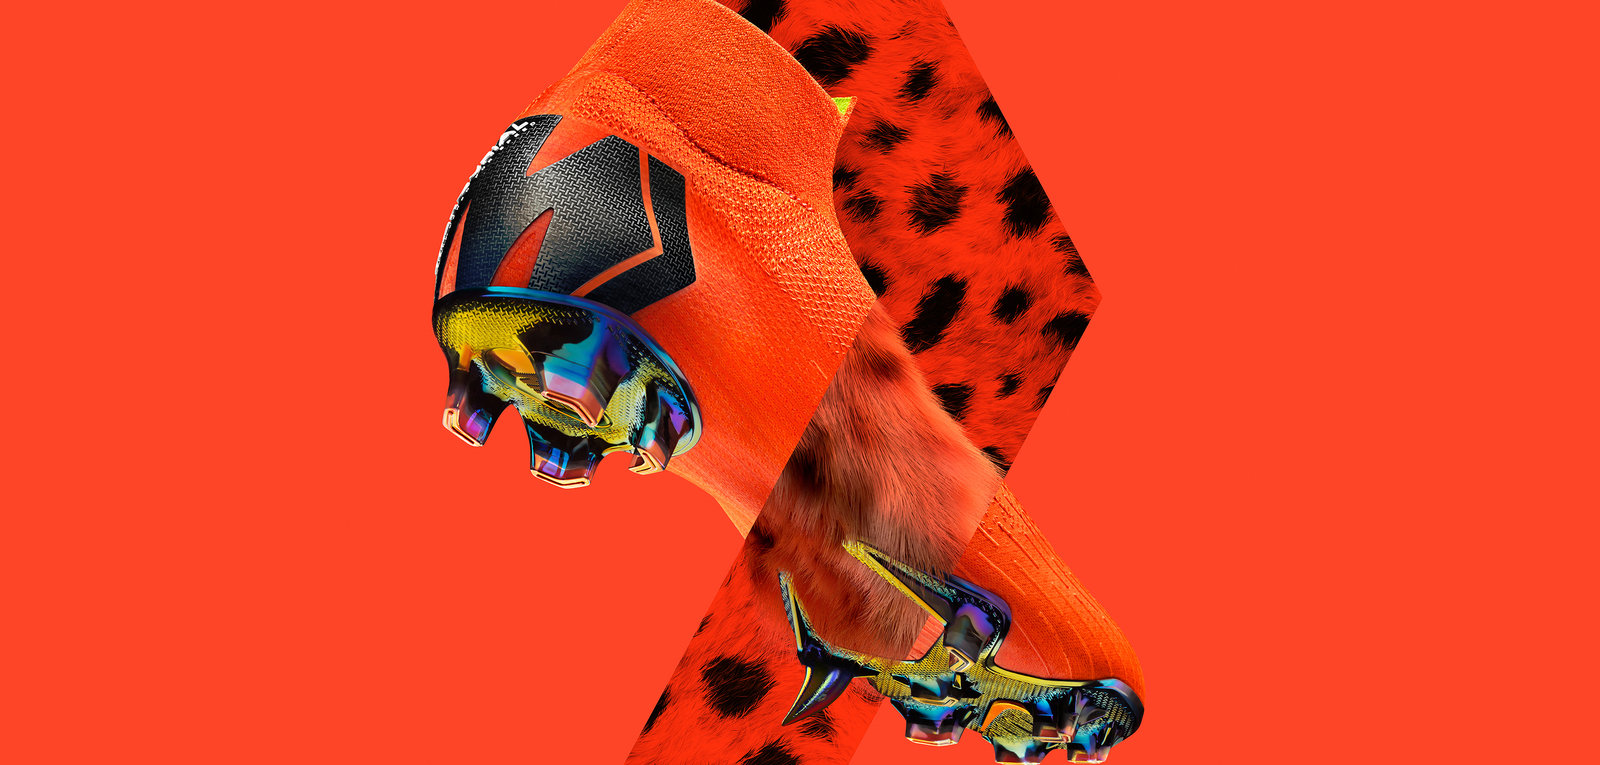 quality design 903c7 44490 Nike s Mercurial Superfly and Vapor 360 Wrap the Entire Foot in Flyknit  Thanks to New Material Combination - Core77